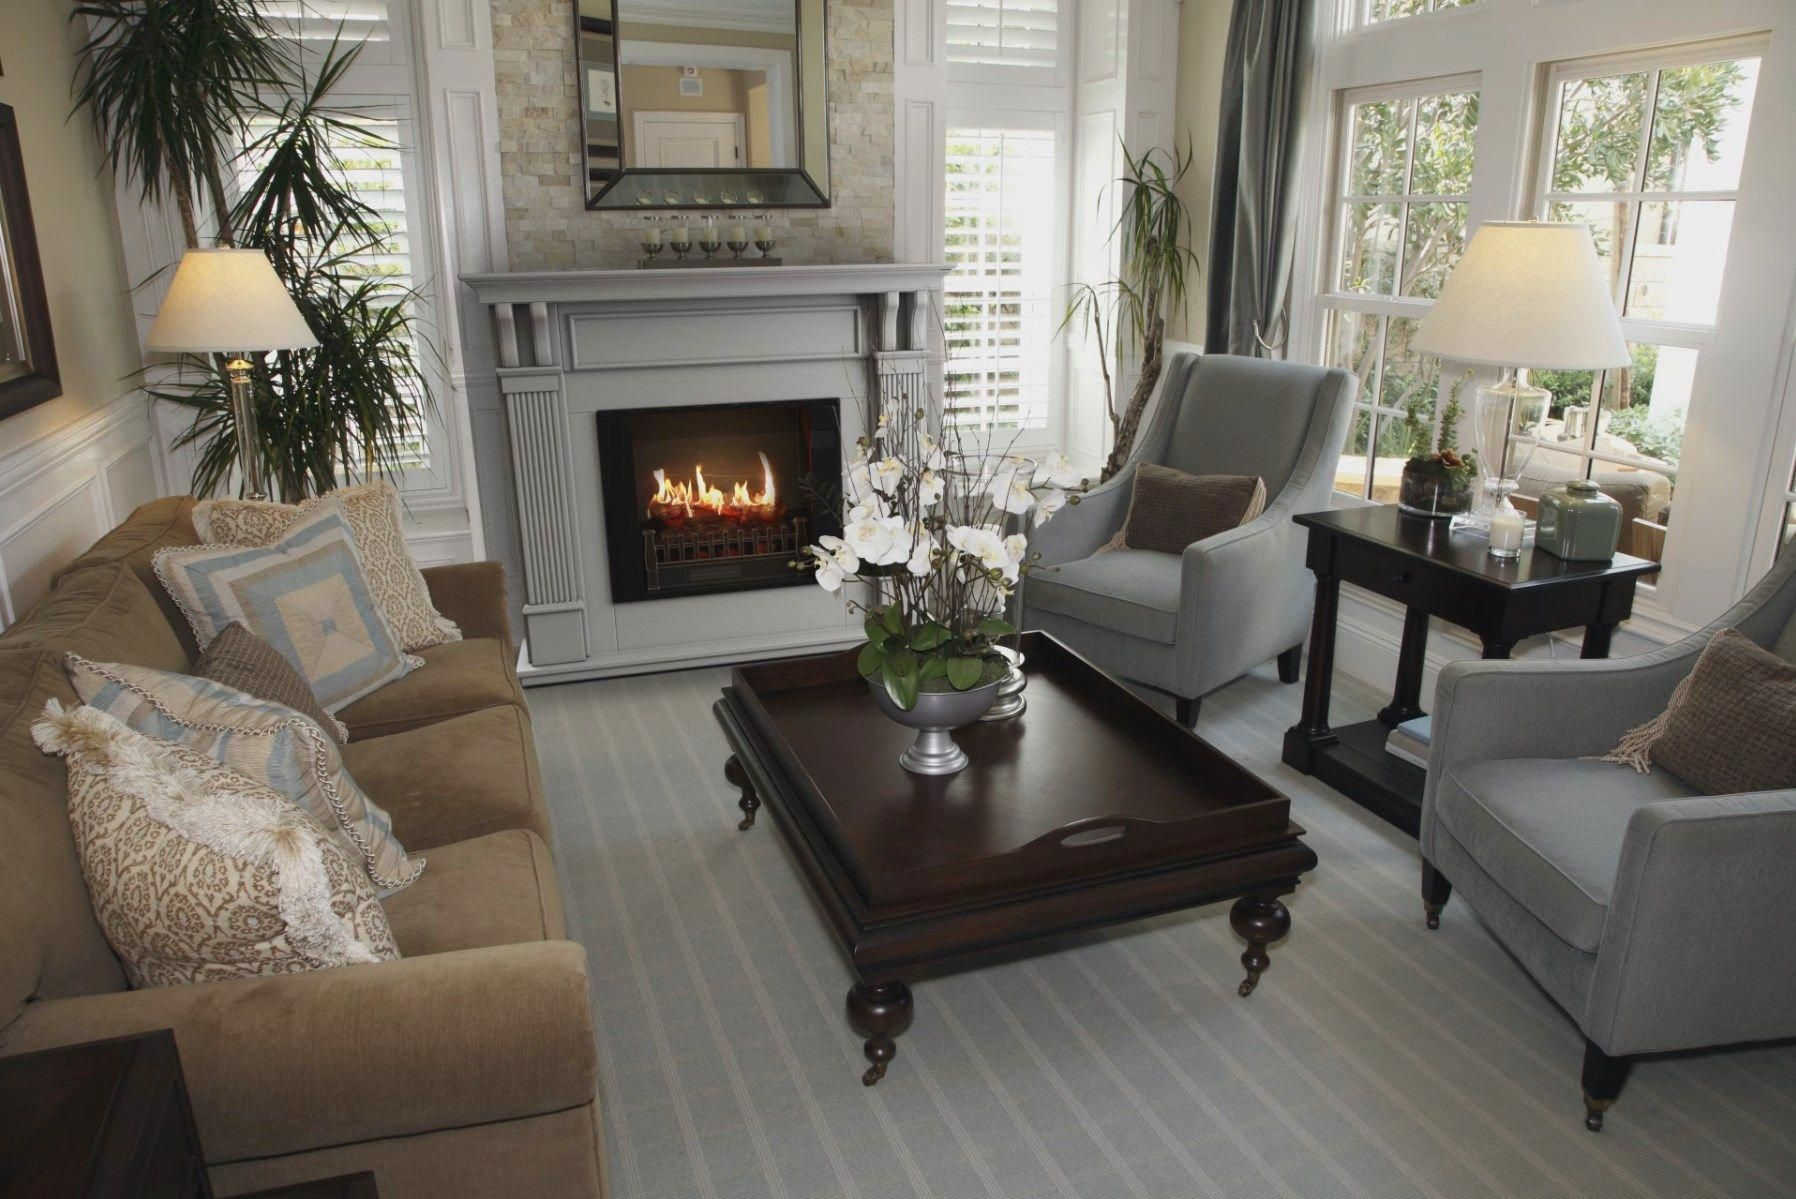 Large White Electric Fireplace With Mantel Trinity M